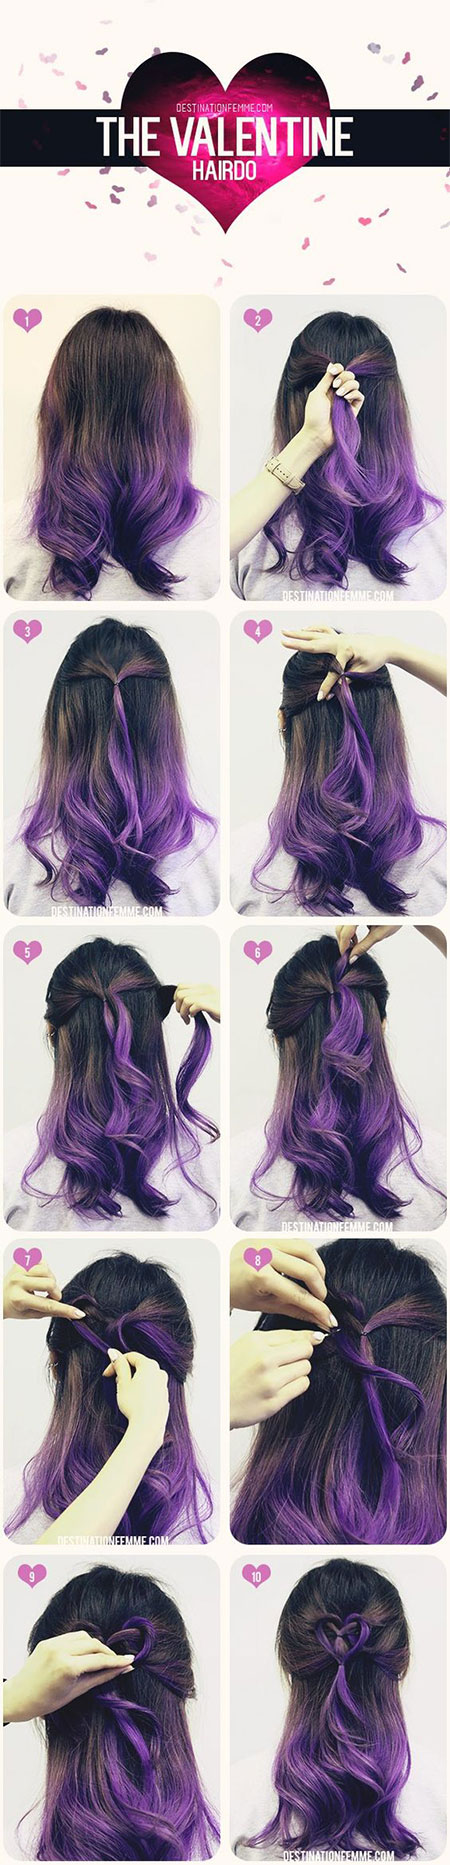 Easy-Valentines-Day-Hairstyle-Tutorials-For-Beginners-Learners-2016-4